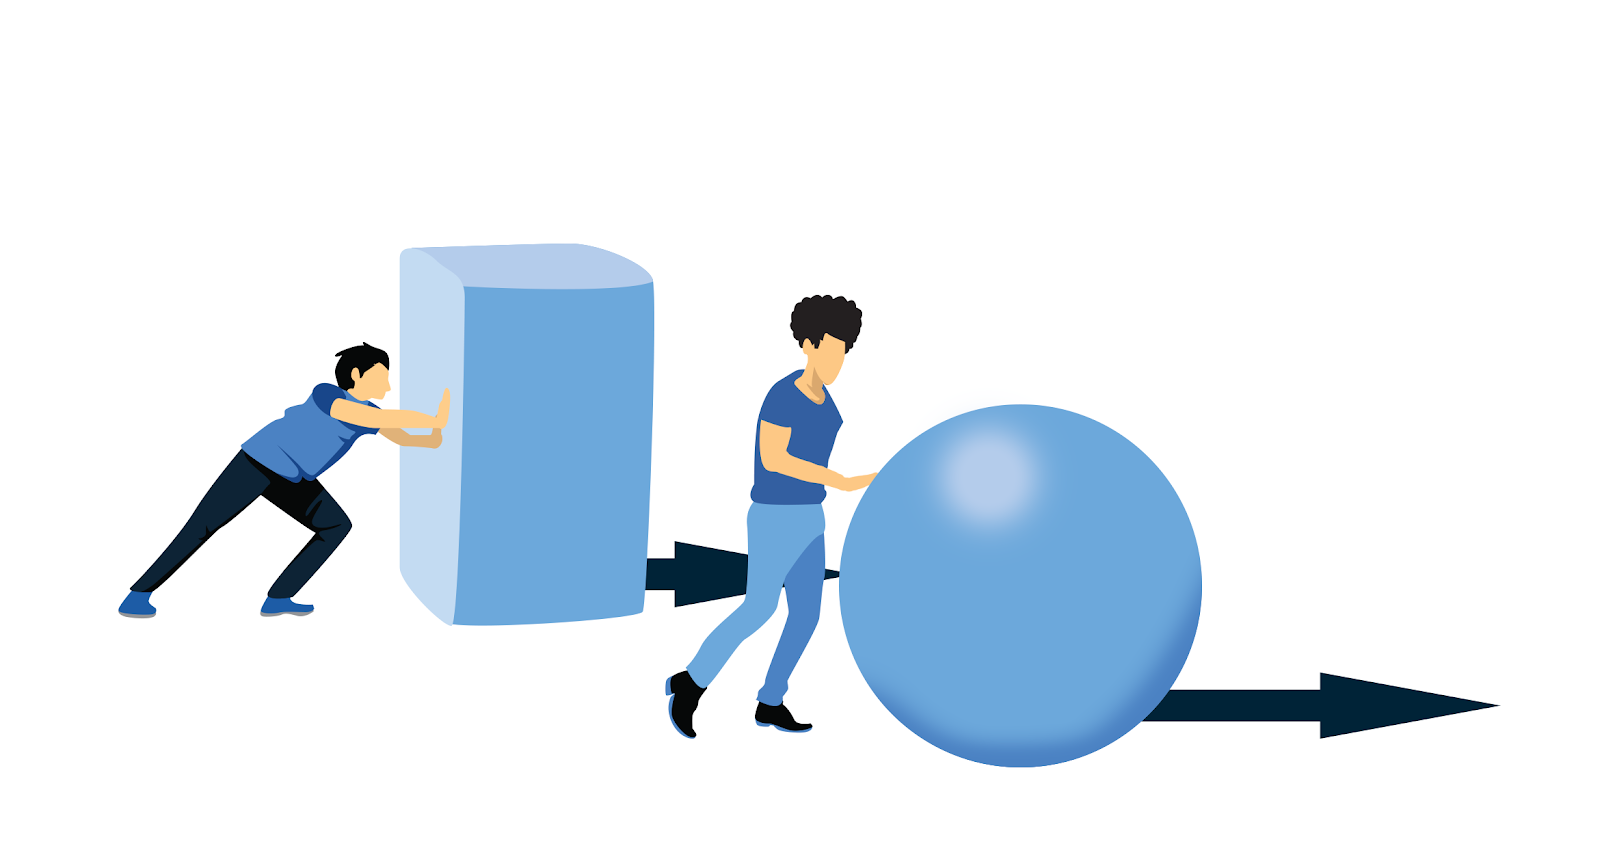 illustration of defining tasks allows a person to work smarter